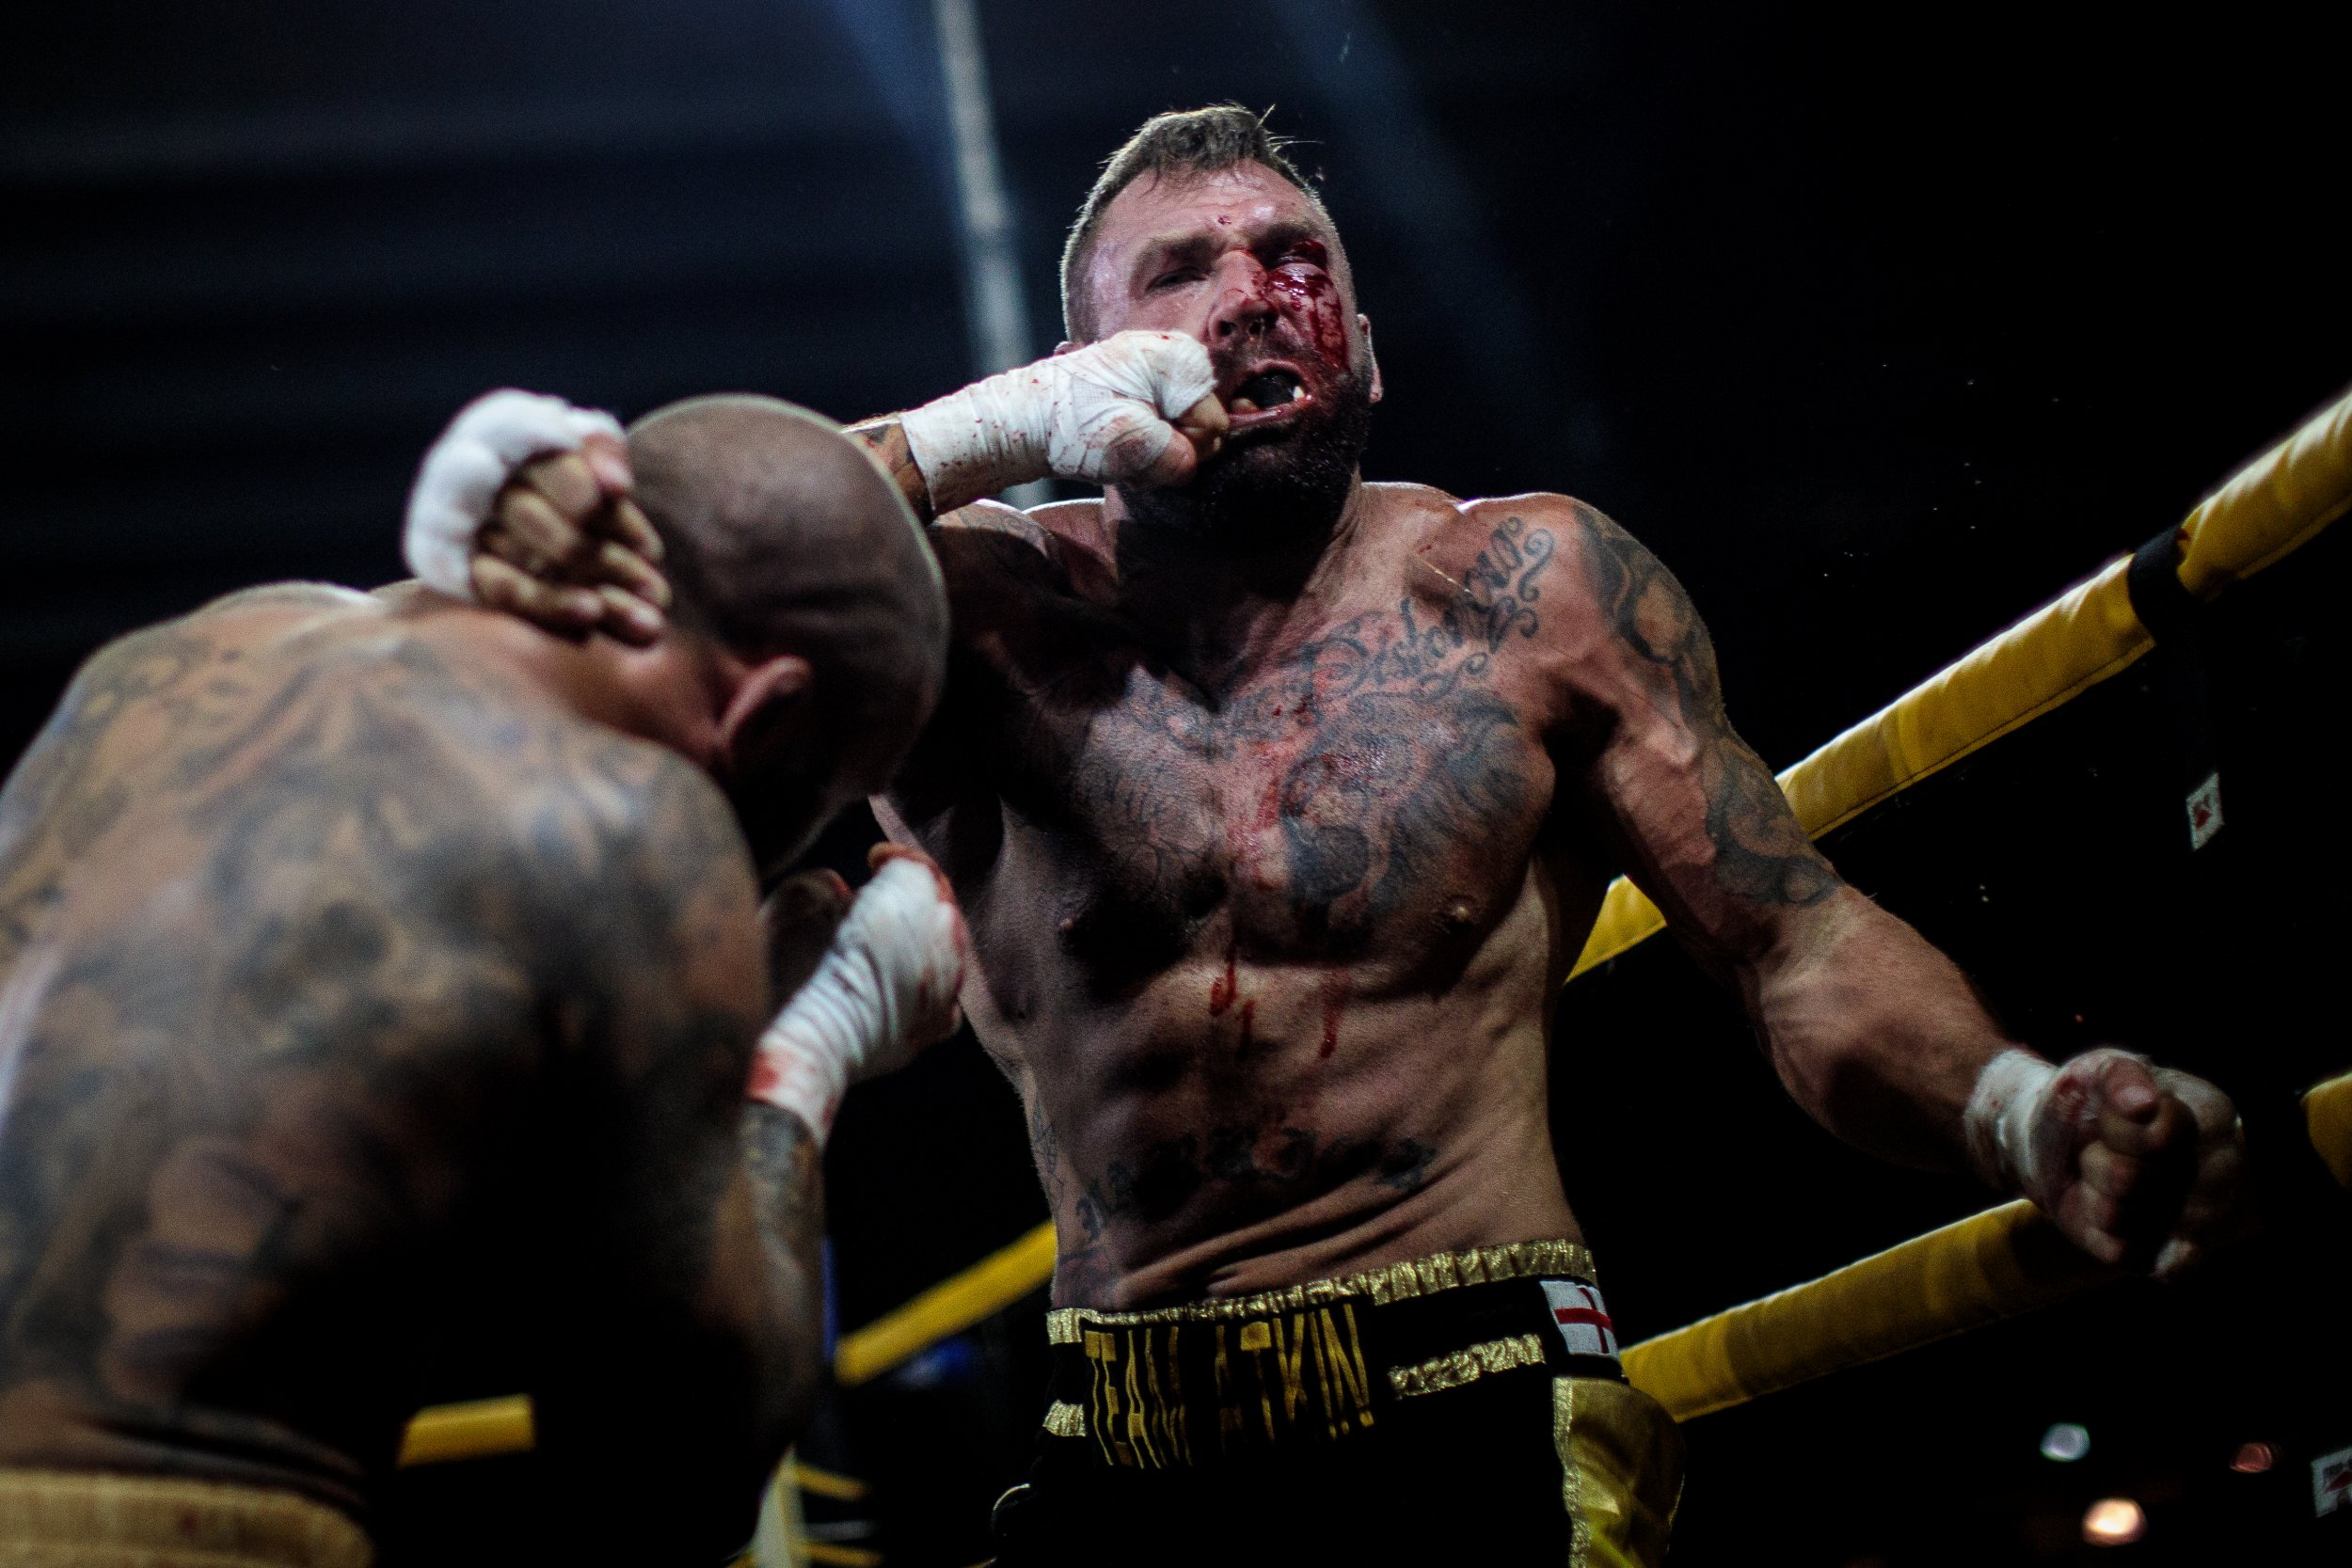 Gruesome pictures show brutal reality of bare knuckle boxing MANCHESTER, ENGLAND - AUGUST 04: Two-time World Bare-Knuckle Boxing Champion Luke Atkin, age 30 from York (R) is hit by Dom Clark, 35 from Bournemouth during the Rogue Elite world title main event at an Ultimate Bare Knuckle Boxing (UBKB) fight at Bowlers Exhibition Centre on August 4, 2018 in Manchester, England. The first formal bare-knuckle boxing bout in Britain was recorded in 1681 with the sport popularised by the end of the 17th century. The introduction of gloves into boxing with the Queensberry rules in 1867 eventually pushed bare-knuckle underground. Today the sport remains legal, but with no licensing body in place bare-knuckle in the UK is unregulated. Consisting of three 2-minute rounds or five 2-minute rounds for title fights, though rarely lasting that long, a fight sees boxers punch one another until knockout or until the referee or medic is forced to end it. Bare-knuckle boxing now looks set to shed its underground image and become more mainstream as the sports moves from pubs and car parks to bigger, more established venues. (Photo by Jack Taylor/Getty Images)